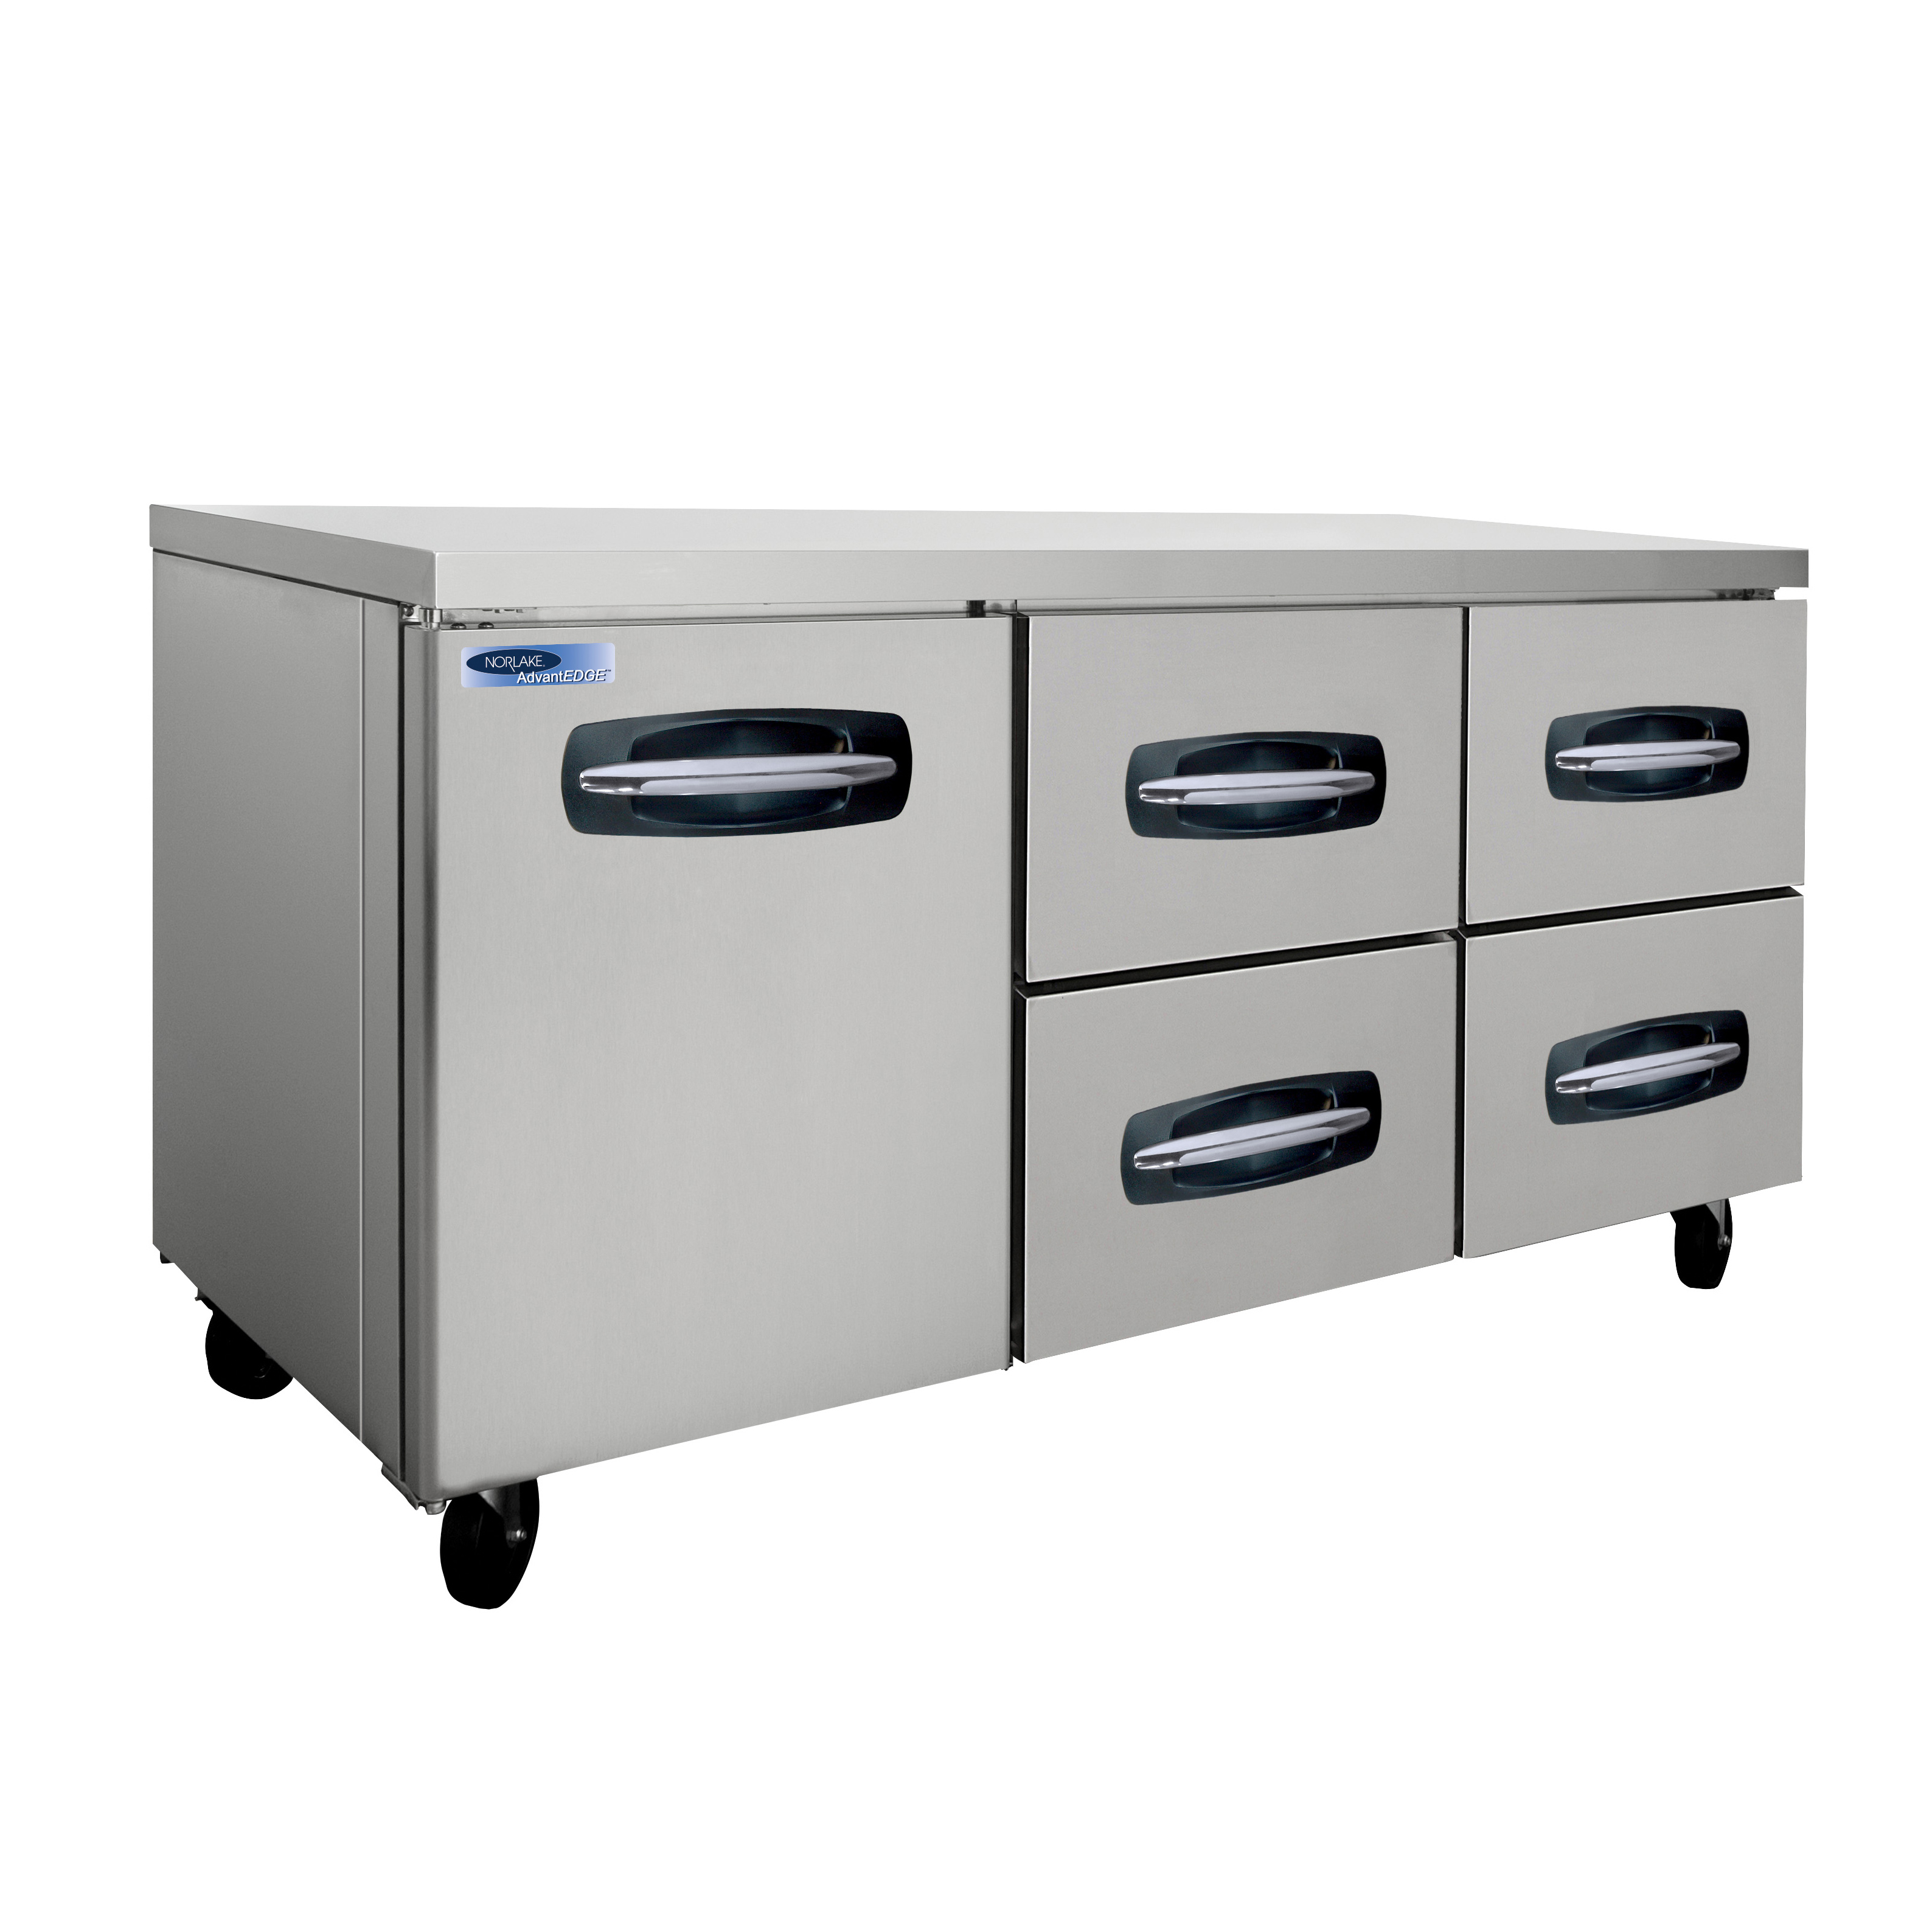 Nor-Lake NLUR72A-006B refrigerator, undercounter, reach-in